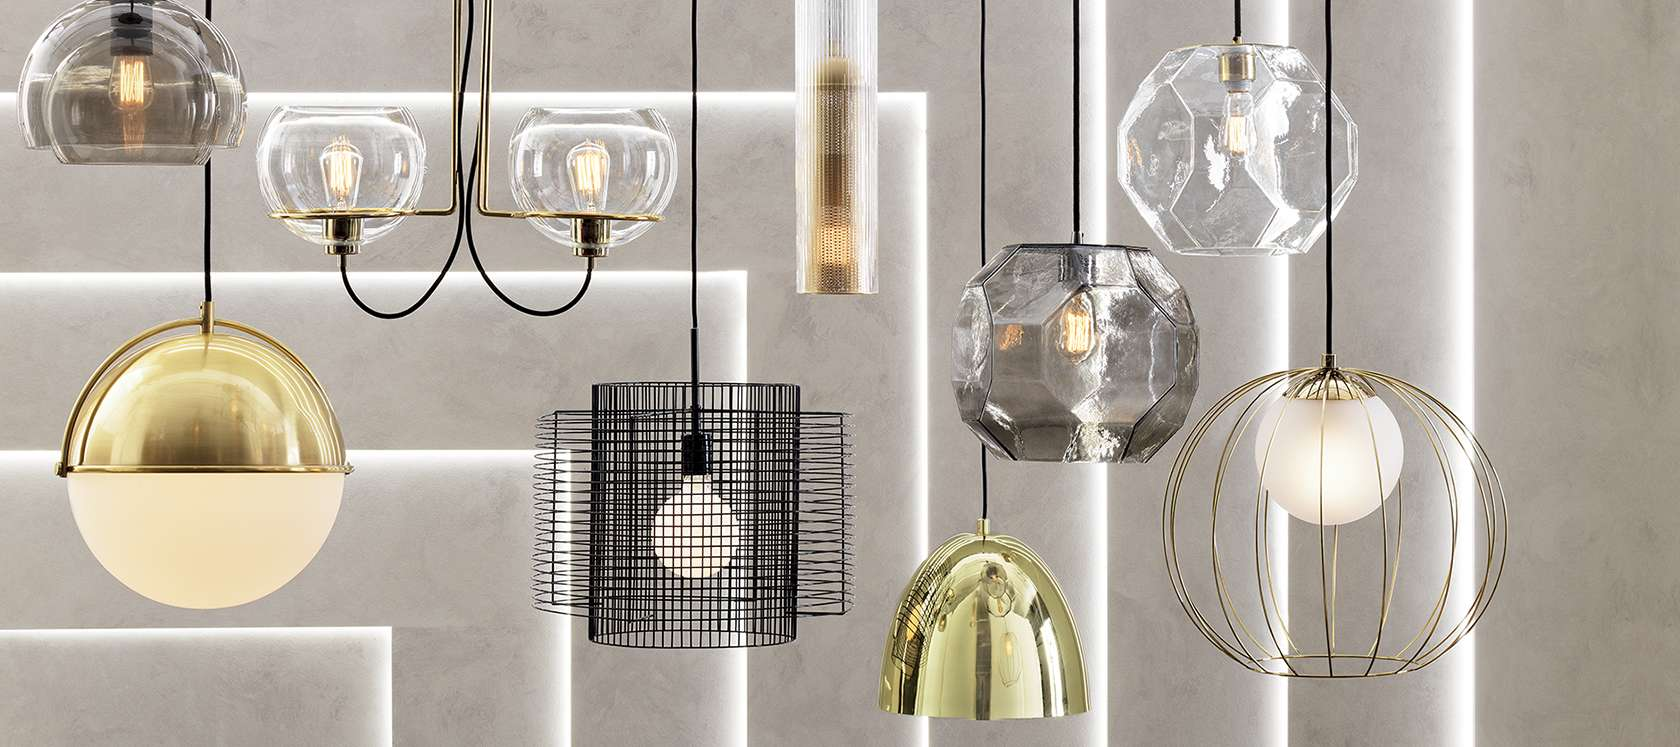 Modern lighting lamps and light fixtures cb2 pendant party shop all lighting arubaitofo Image collections